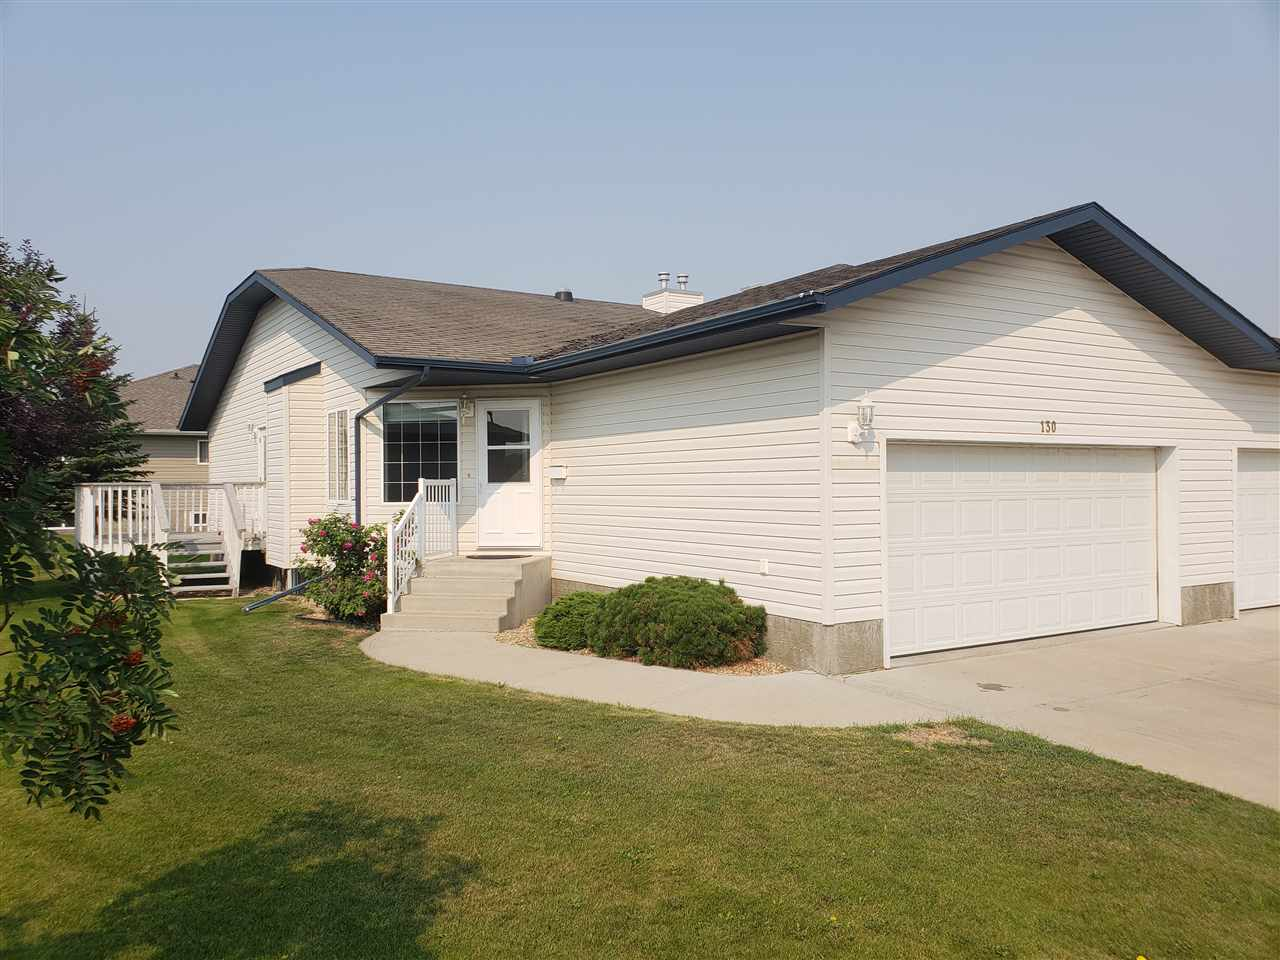 130 7000 Northview Dr, 2 bed, 2 bath, at $229,900